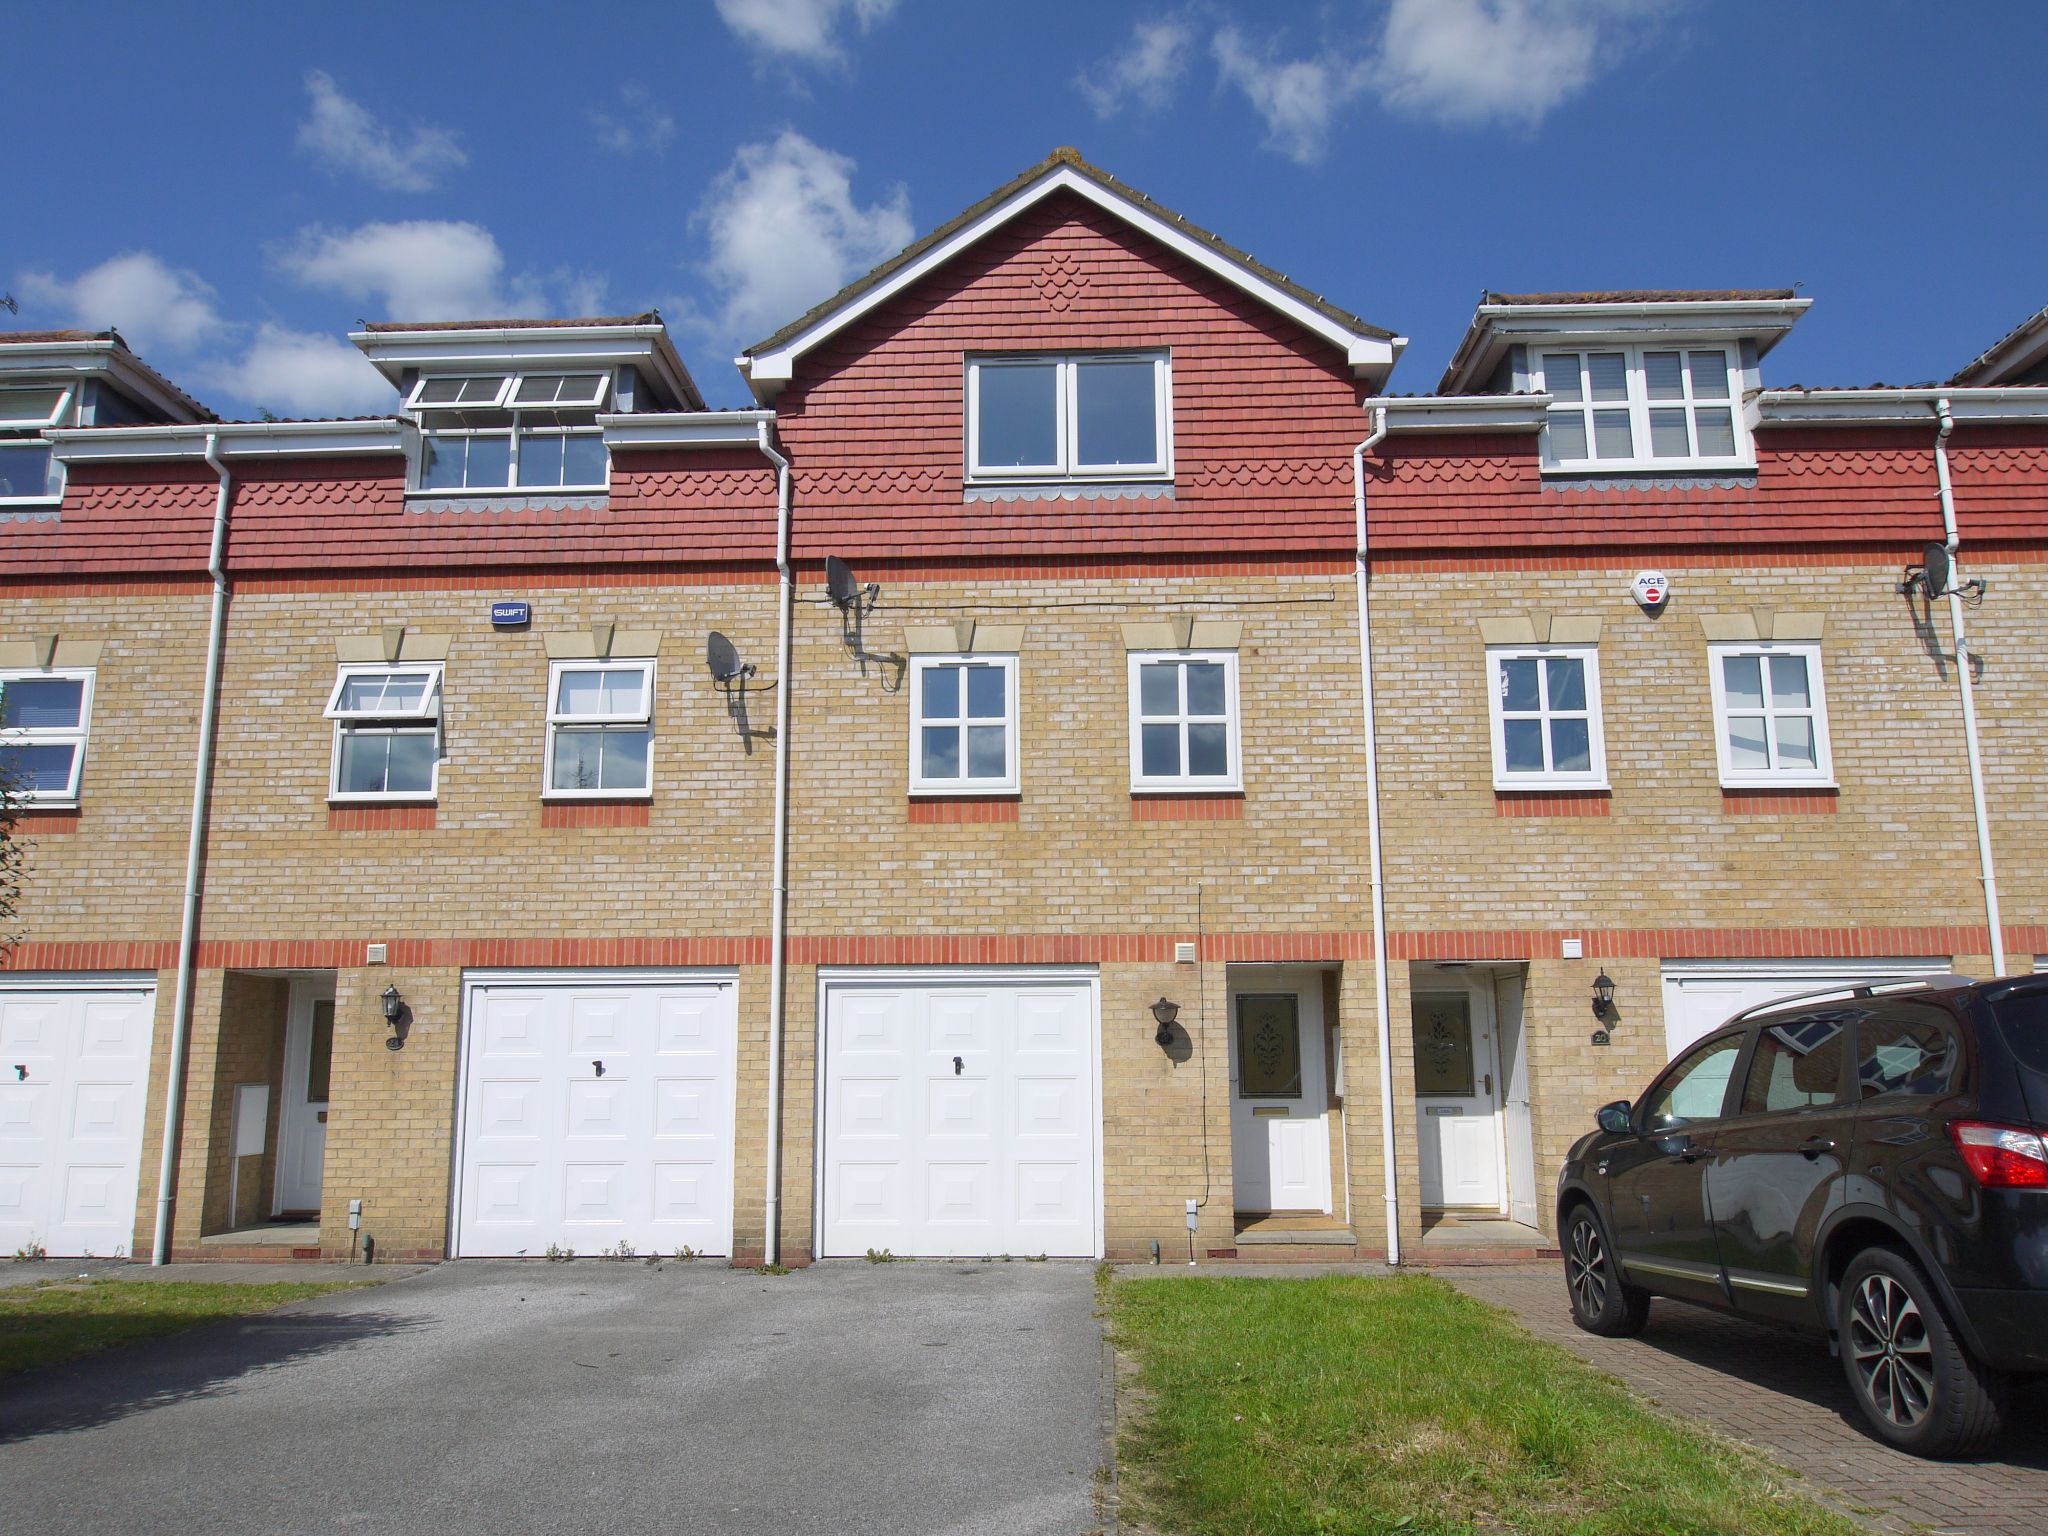 4 bedroom town house Sold in Sevenoaks - Photograph 1